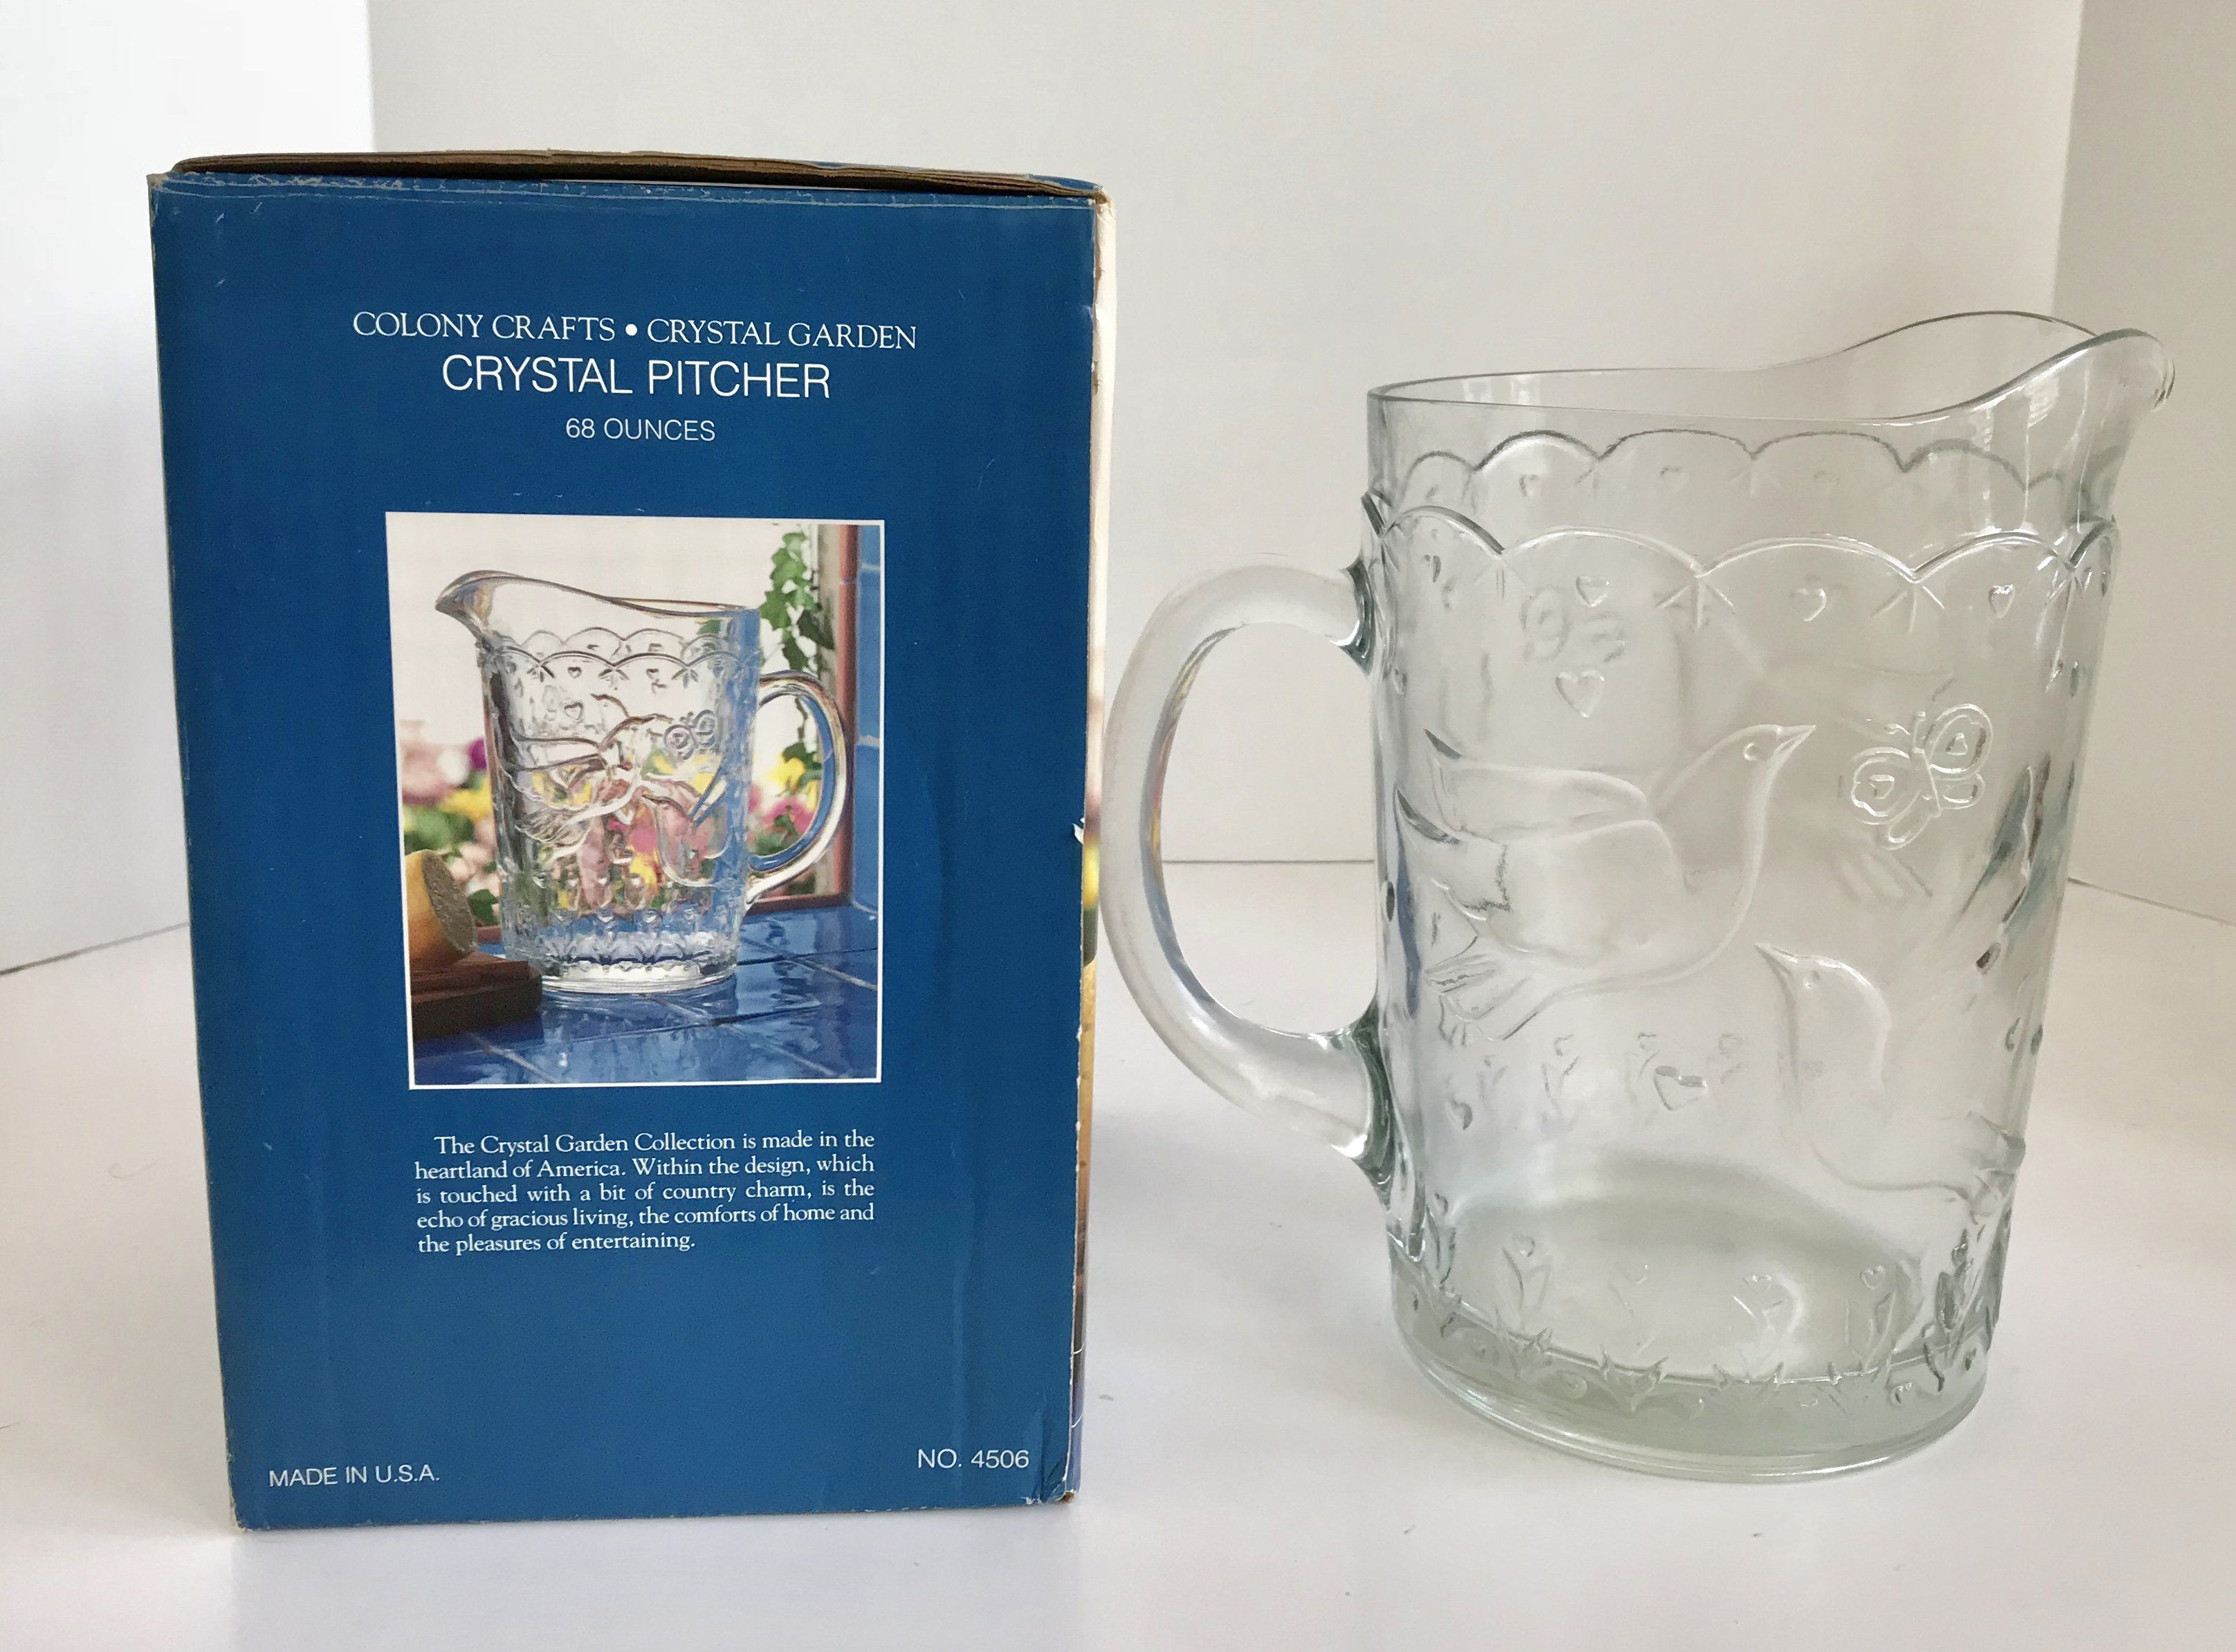 Colony Crafts 68 Ounce Crystal Garden Crystal Pitcher with Original